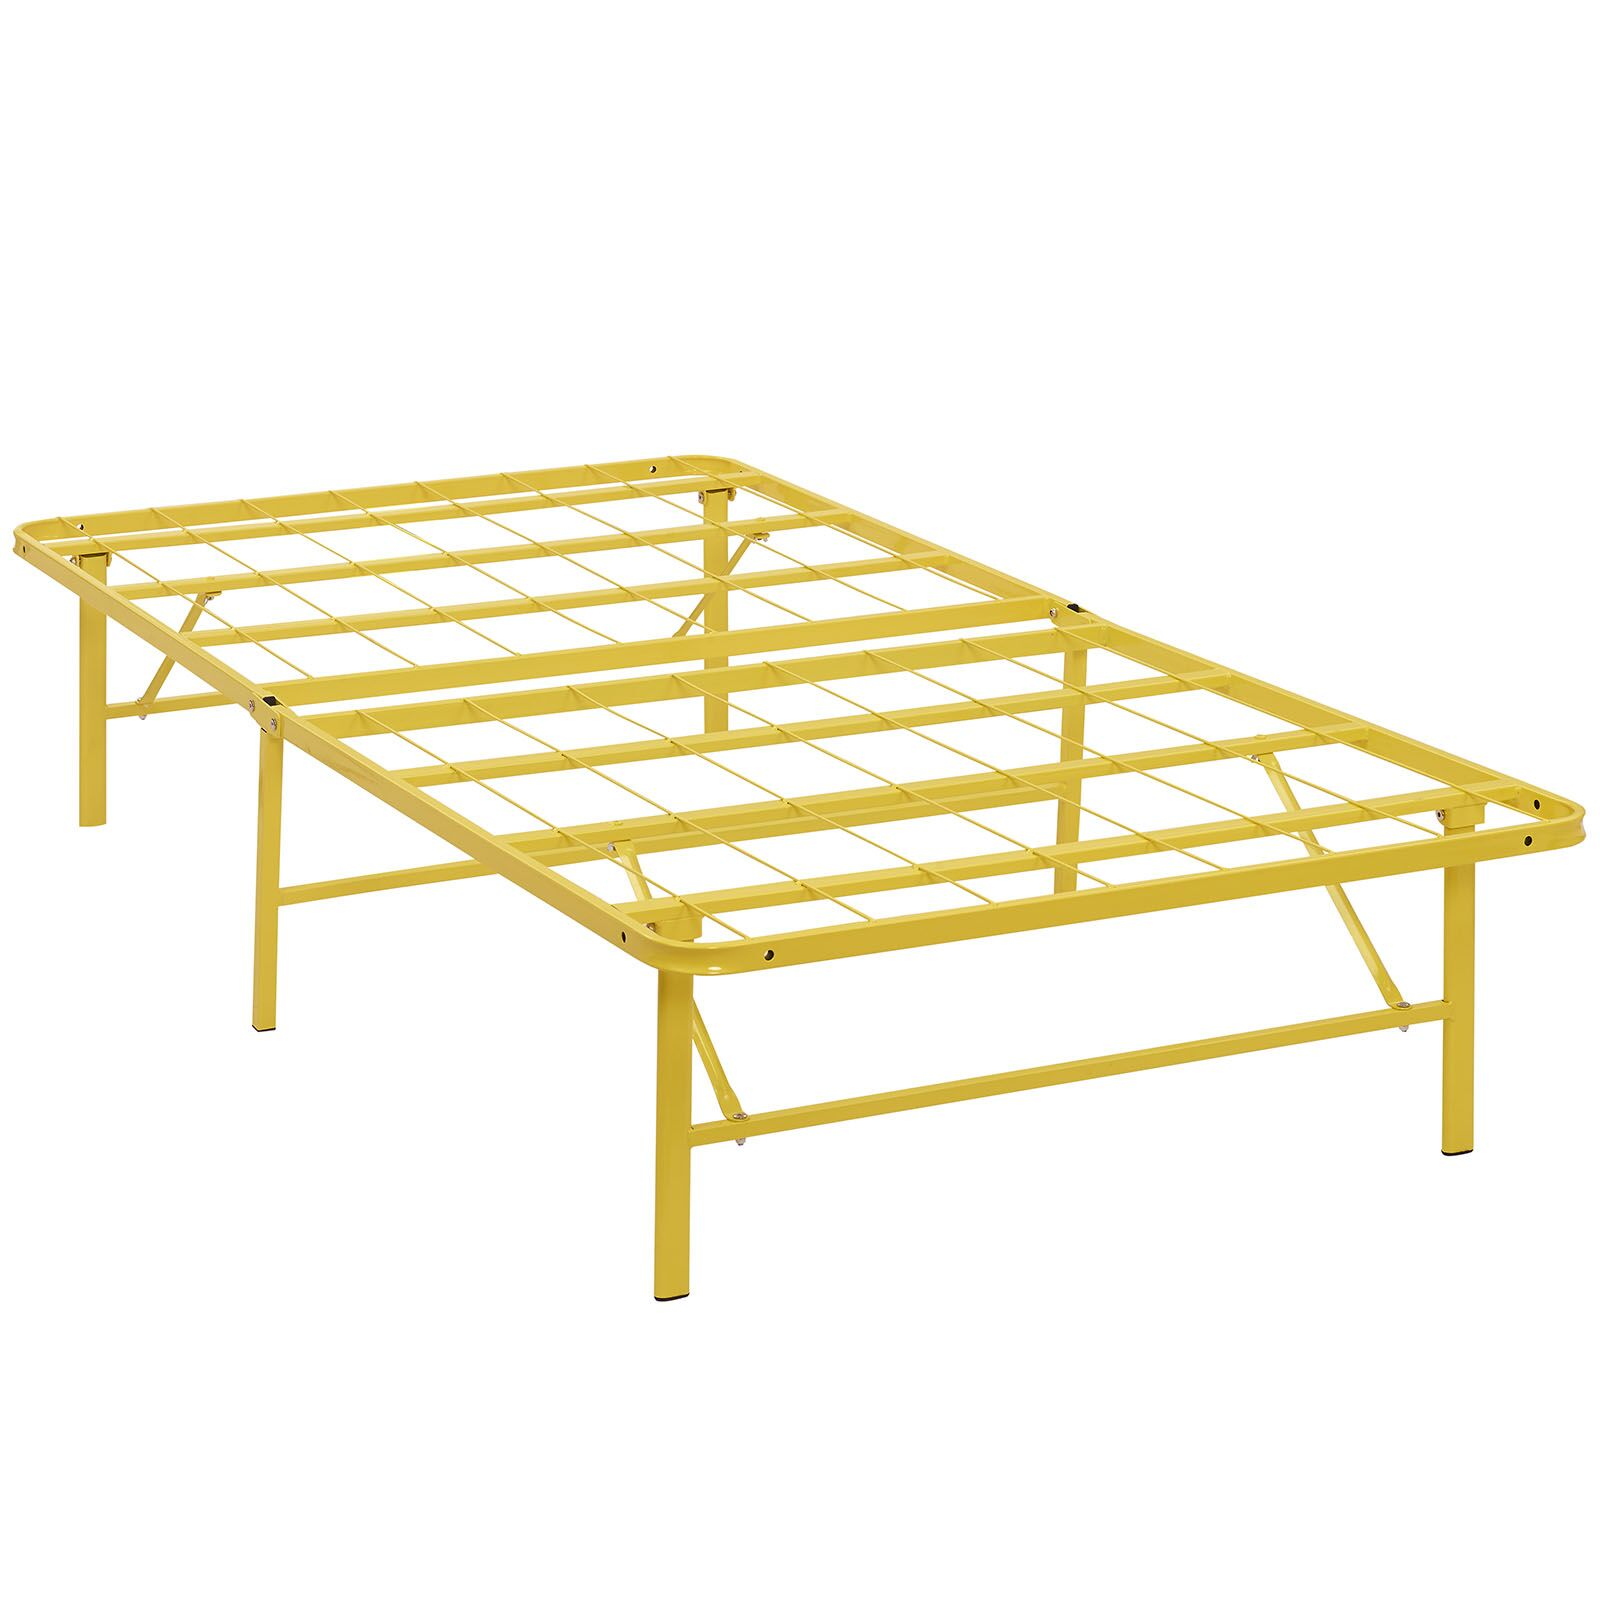 Horizon Steel Bed Frame Color: Yellow, Size: Queen